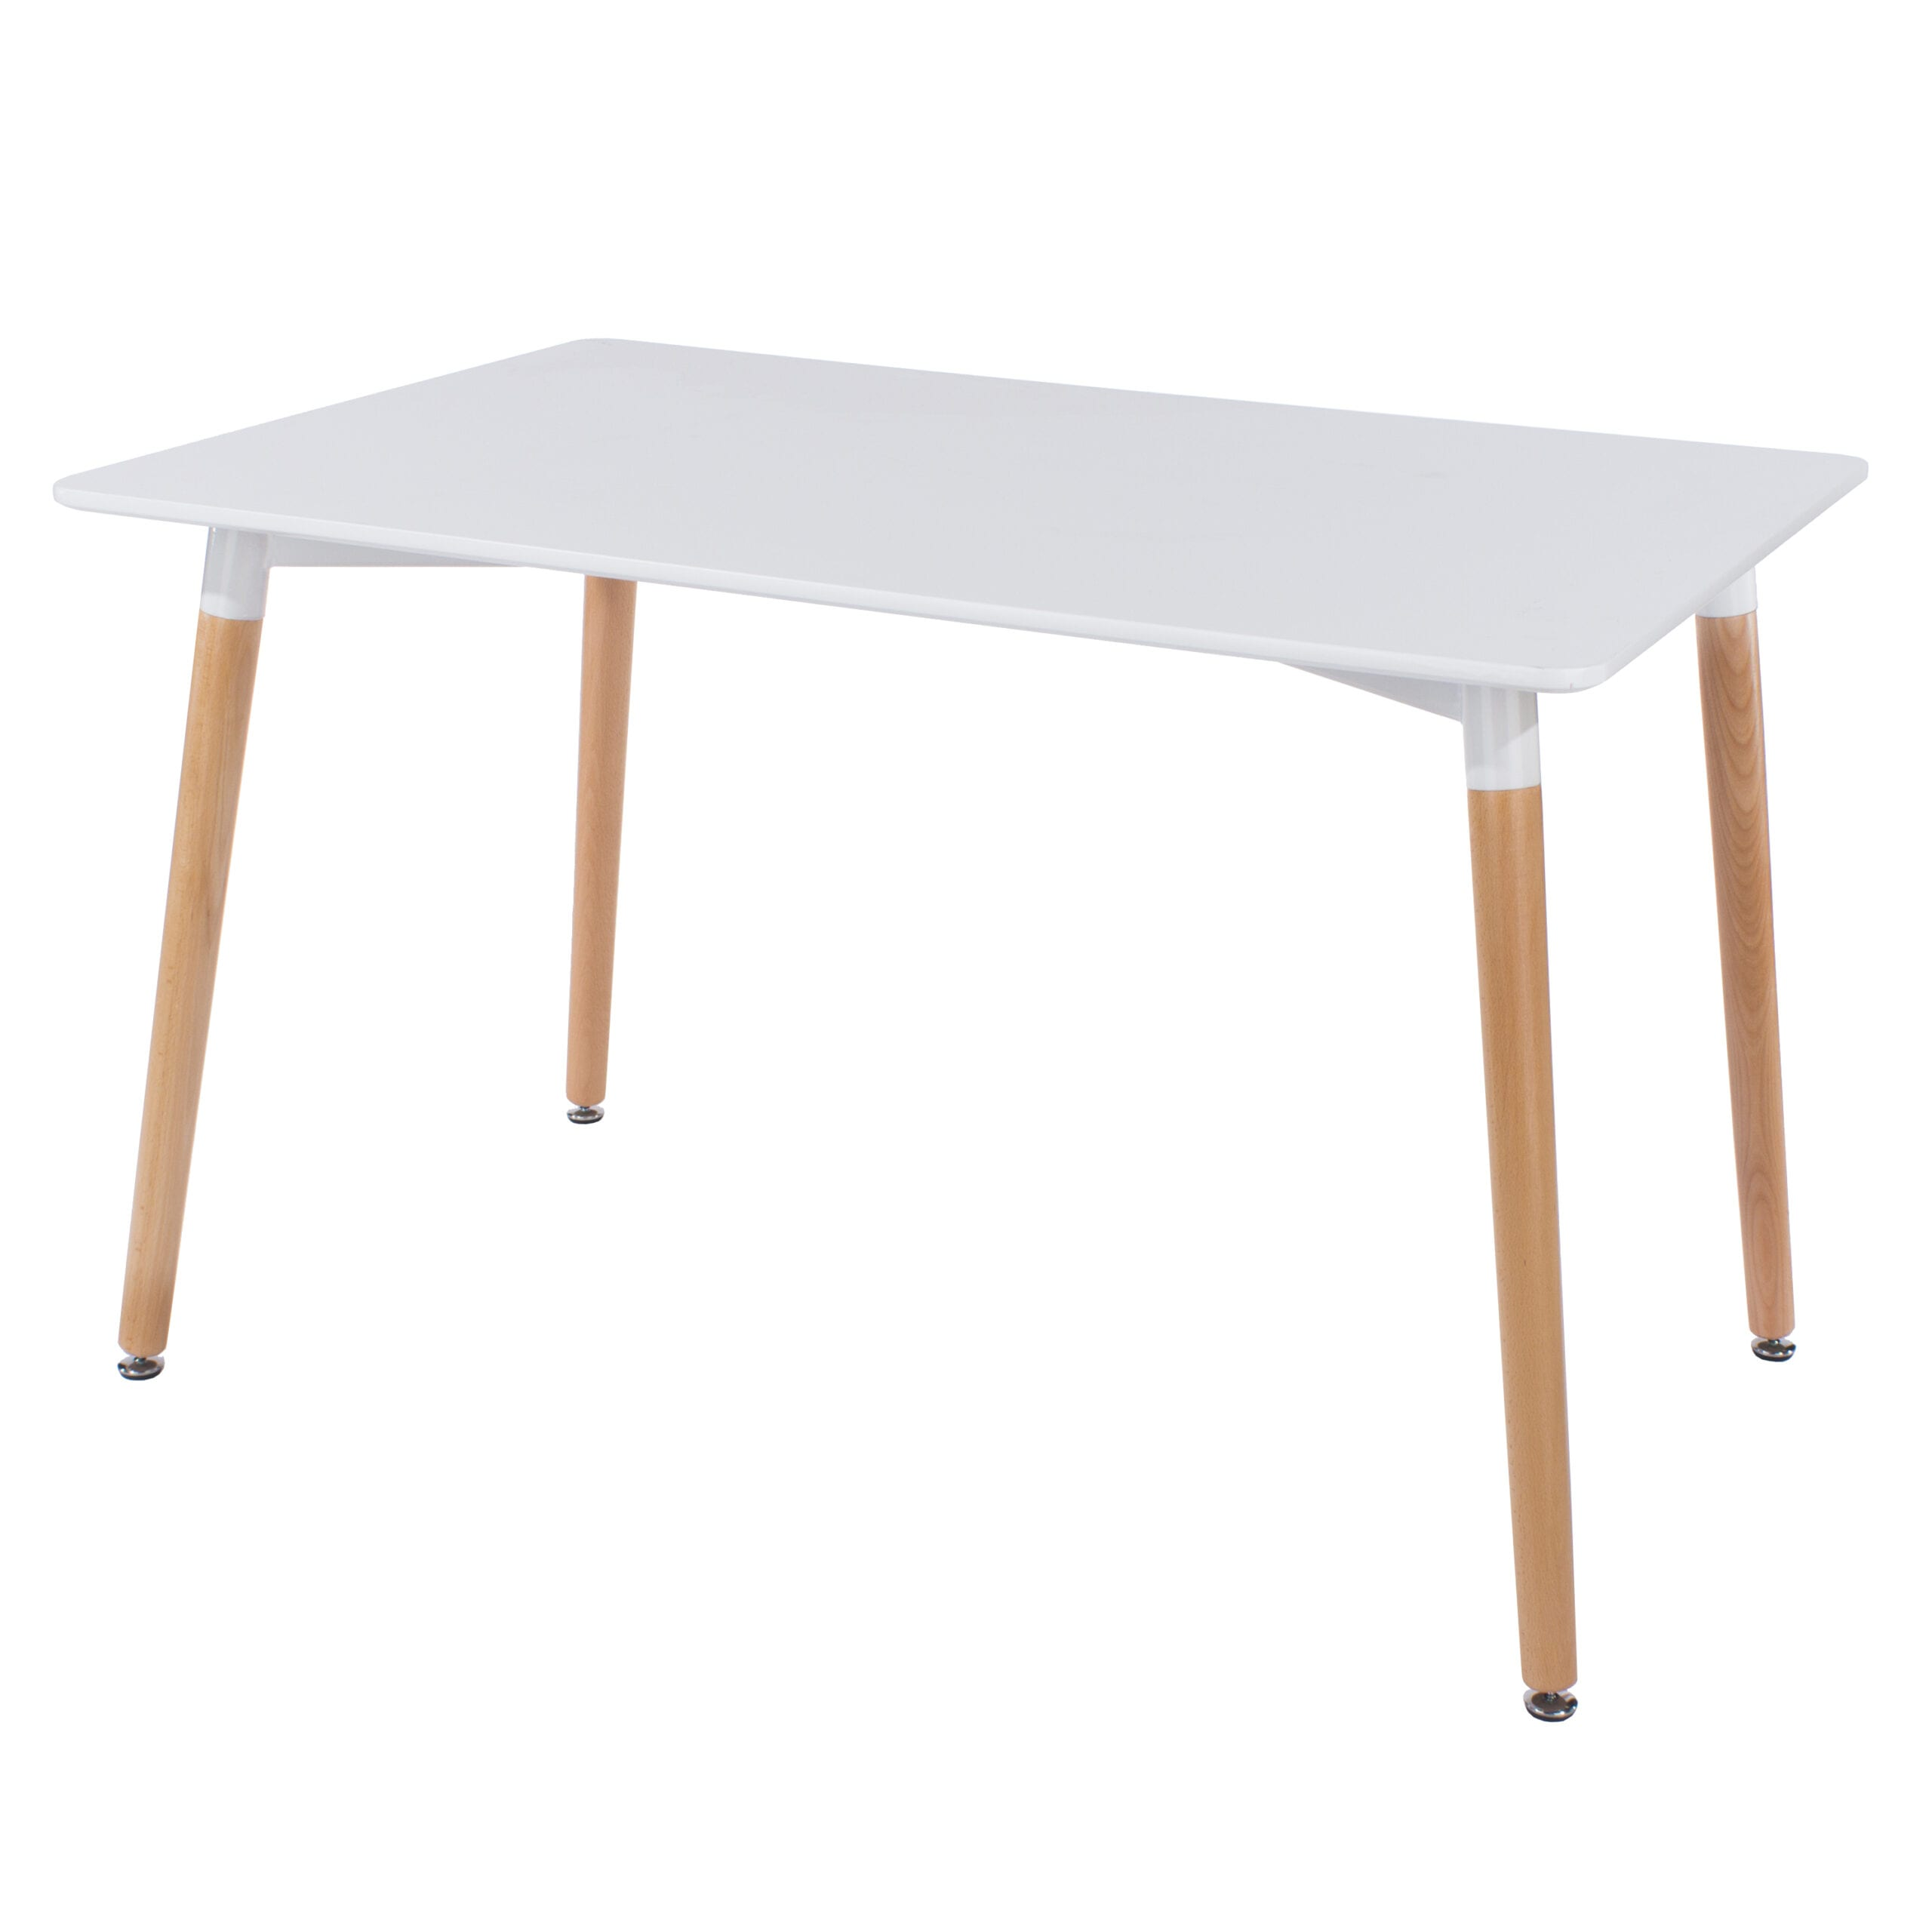 Drake rectangular table with wooden legs